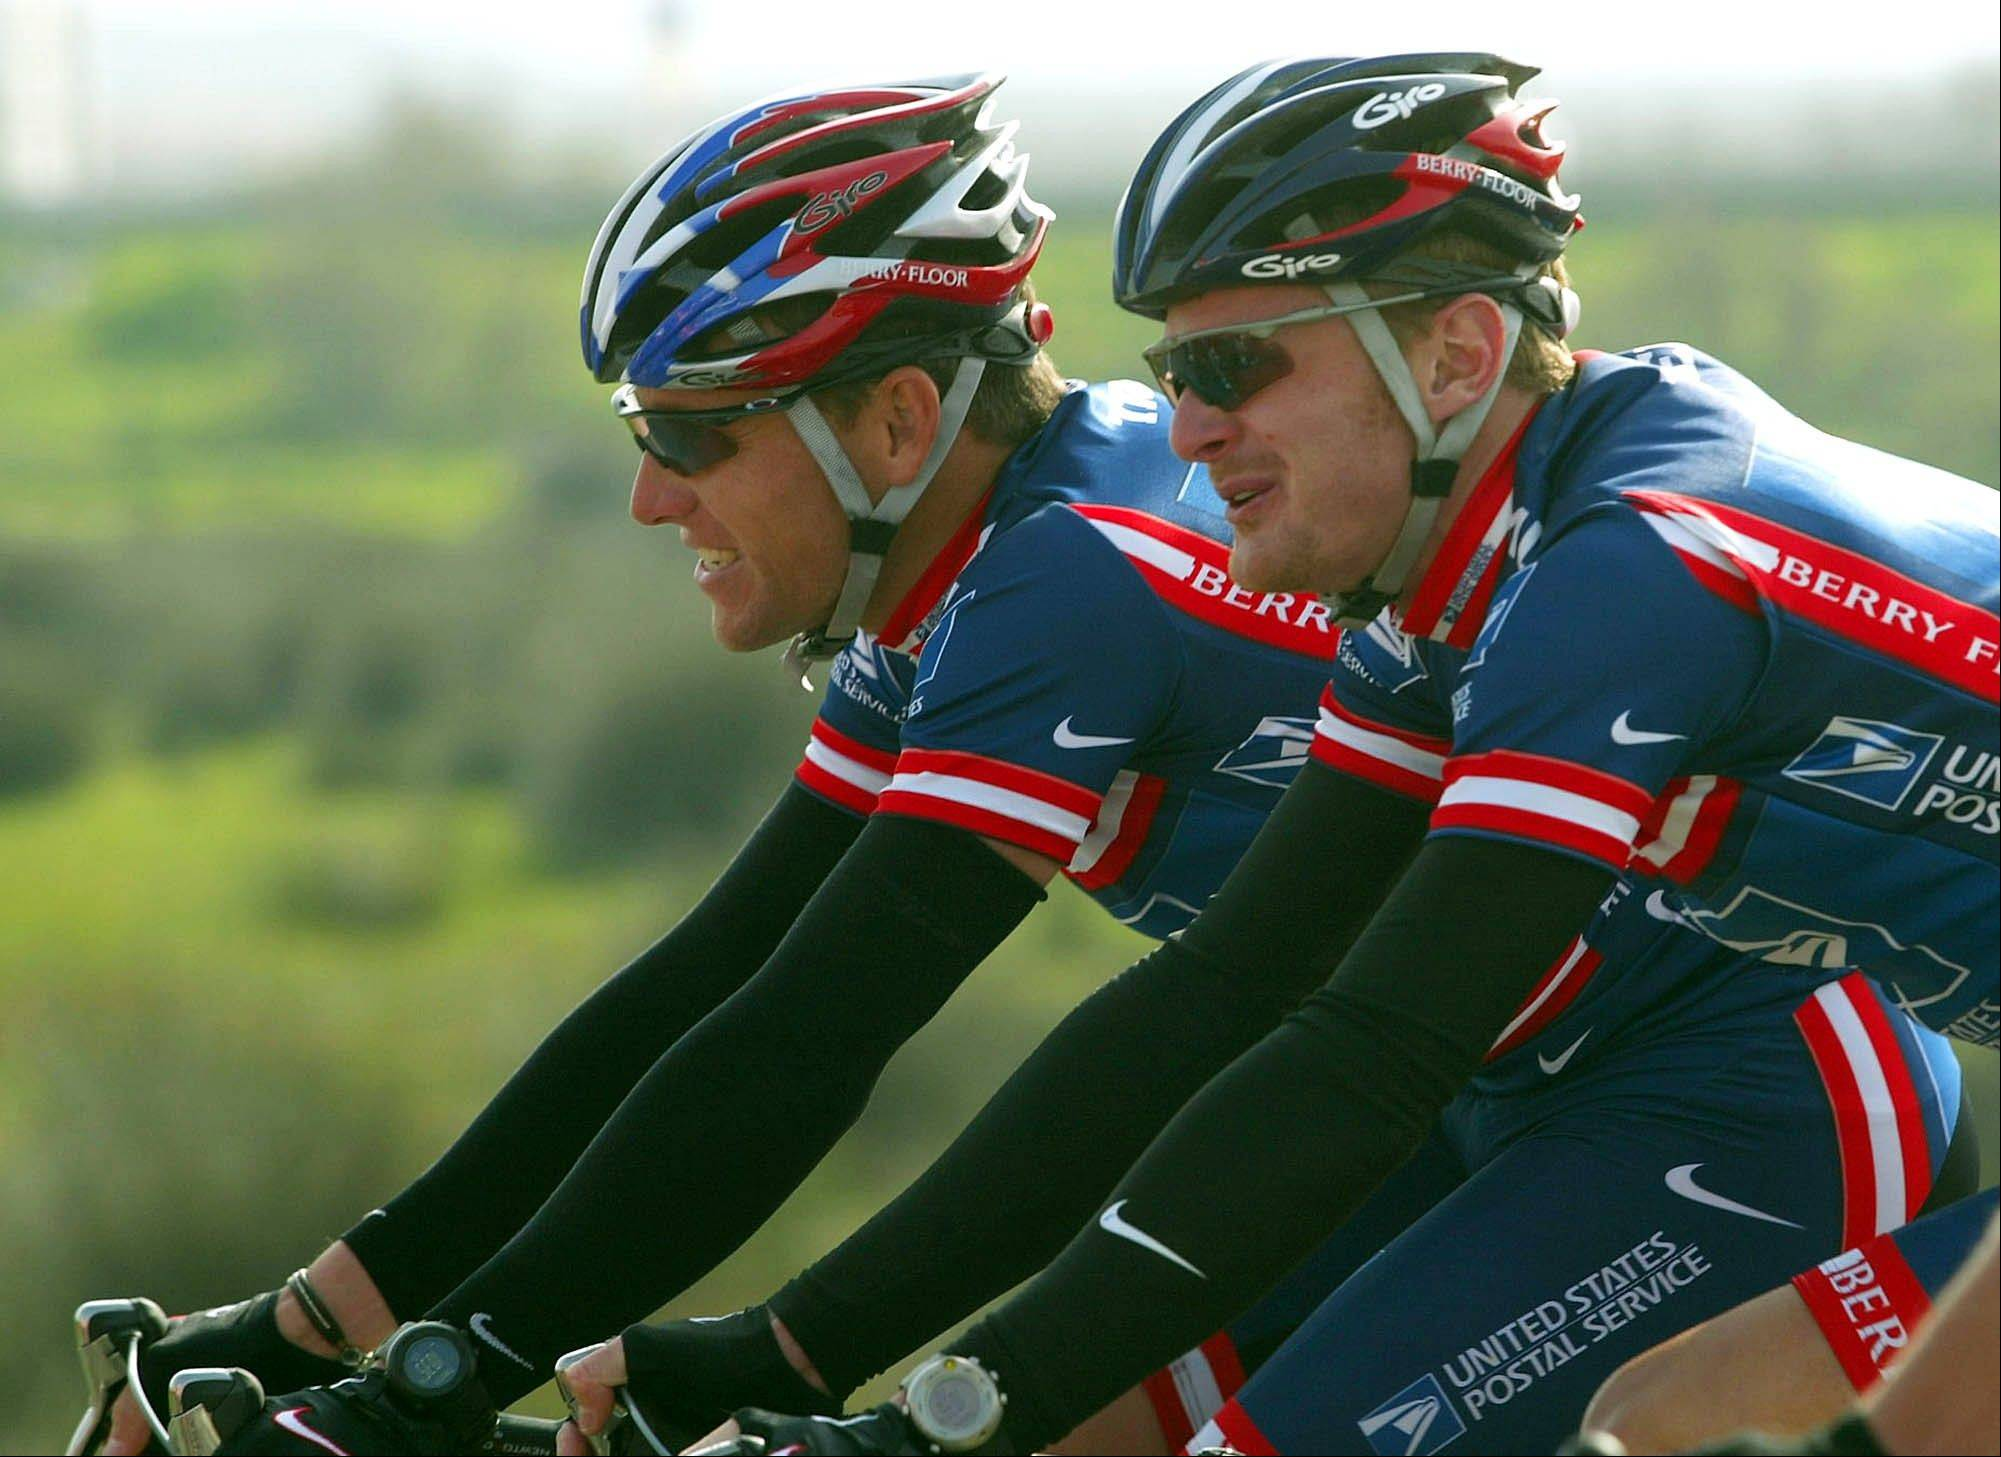 Lance Armstrong, left, and Floyd Landis, then both members of the U.S. Postal Service cycling team, ride side by side during a 2004 race in Portugal. Attorneys for the federal government and Landis urged a judge not to dismiss the whistle-blower lawsuit against Armstrong, arguing the Texan and former team officials should have to pay back at least $40 million they were paid in a sponsorship deal with the U.S. Postal Service.